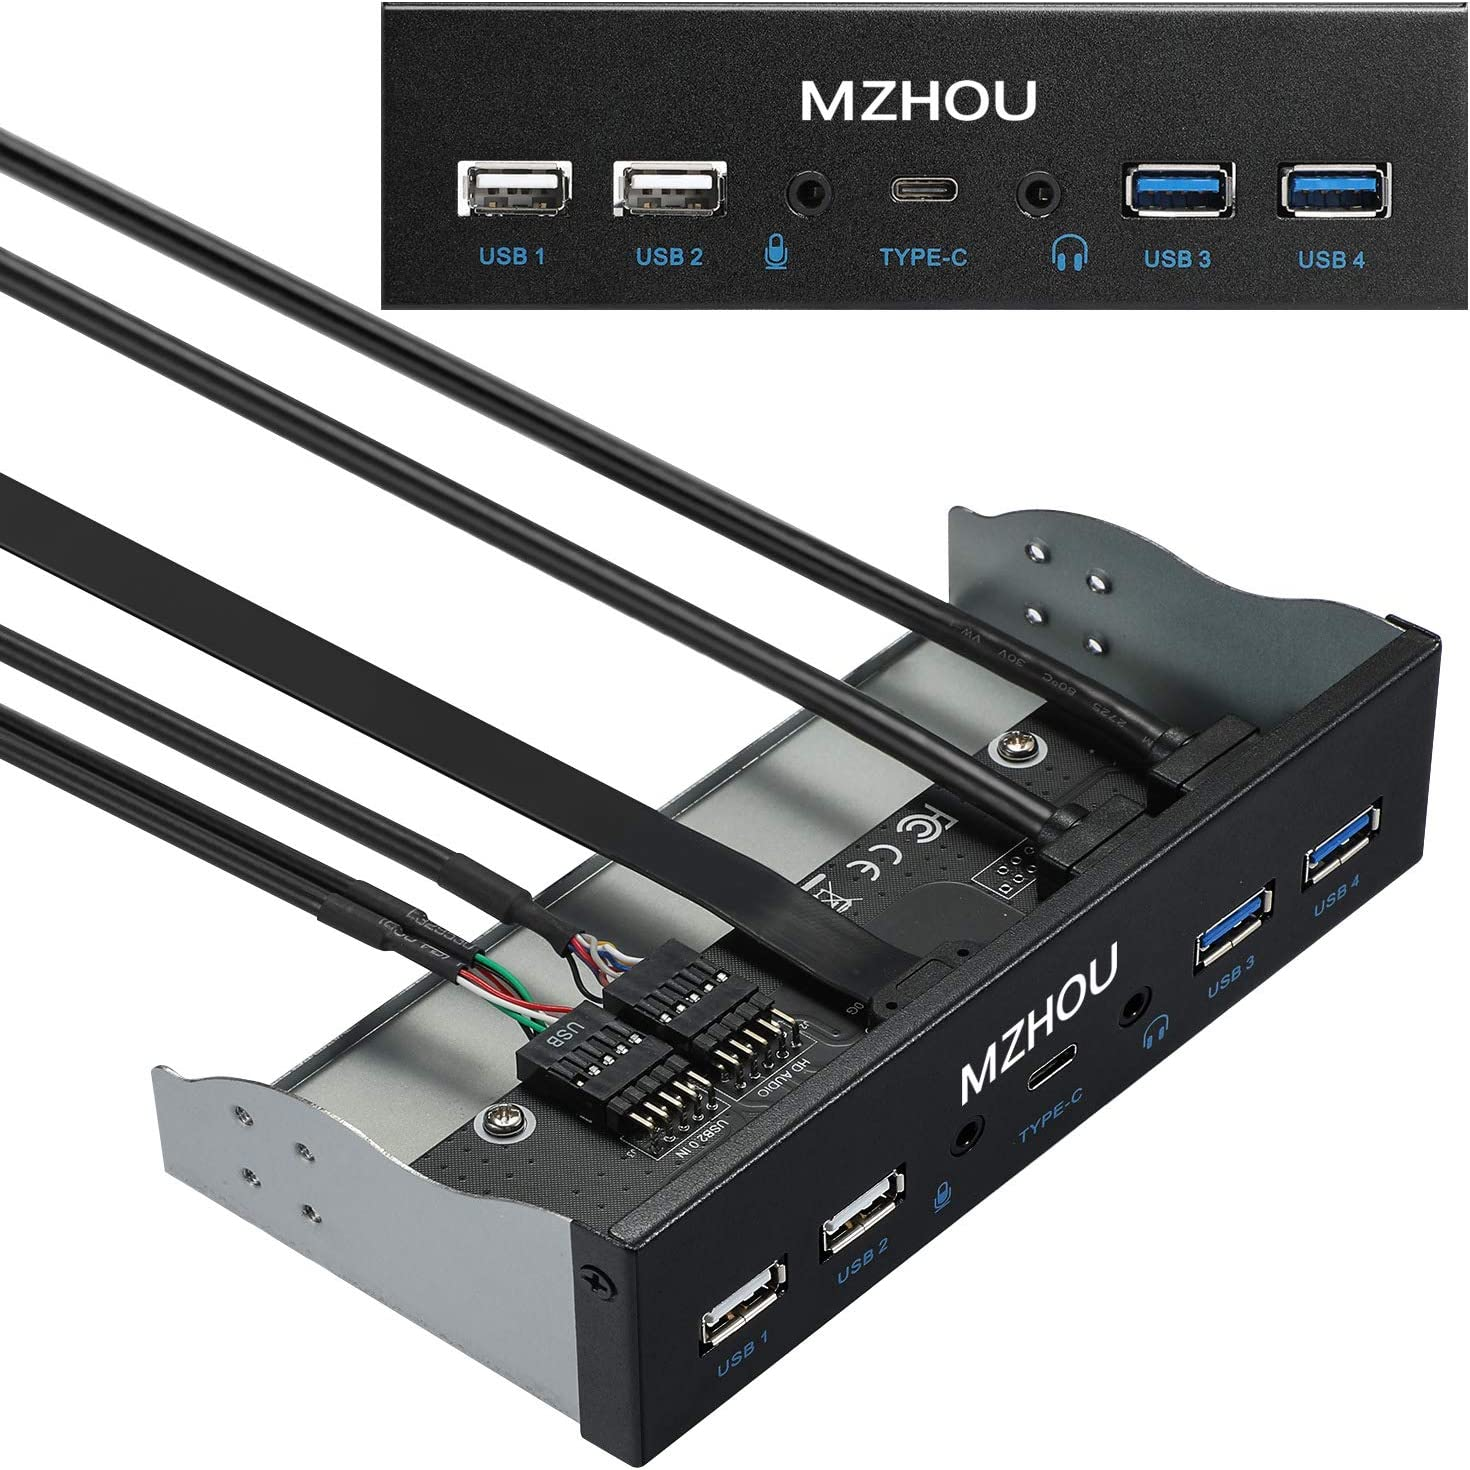 MZHOU USB2.0 + 3.0 Metal Front, 5.25 inch 19Pin Front Panel Adapter, 4 USB 3.0 Port hubs and (1HD Audio Port / 1TPY-C Port / 1 Microphone Input)